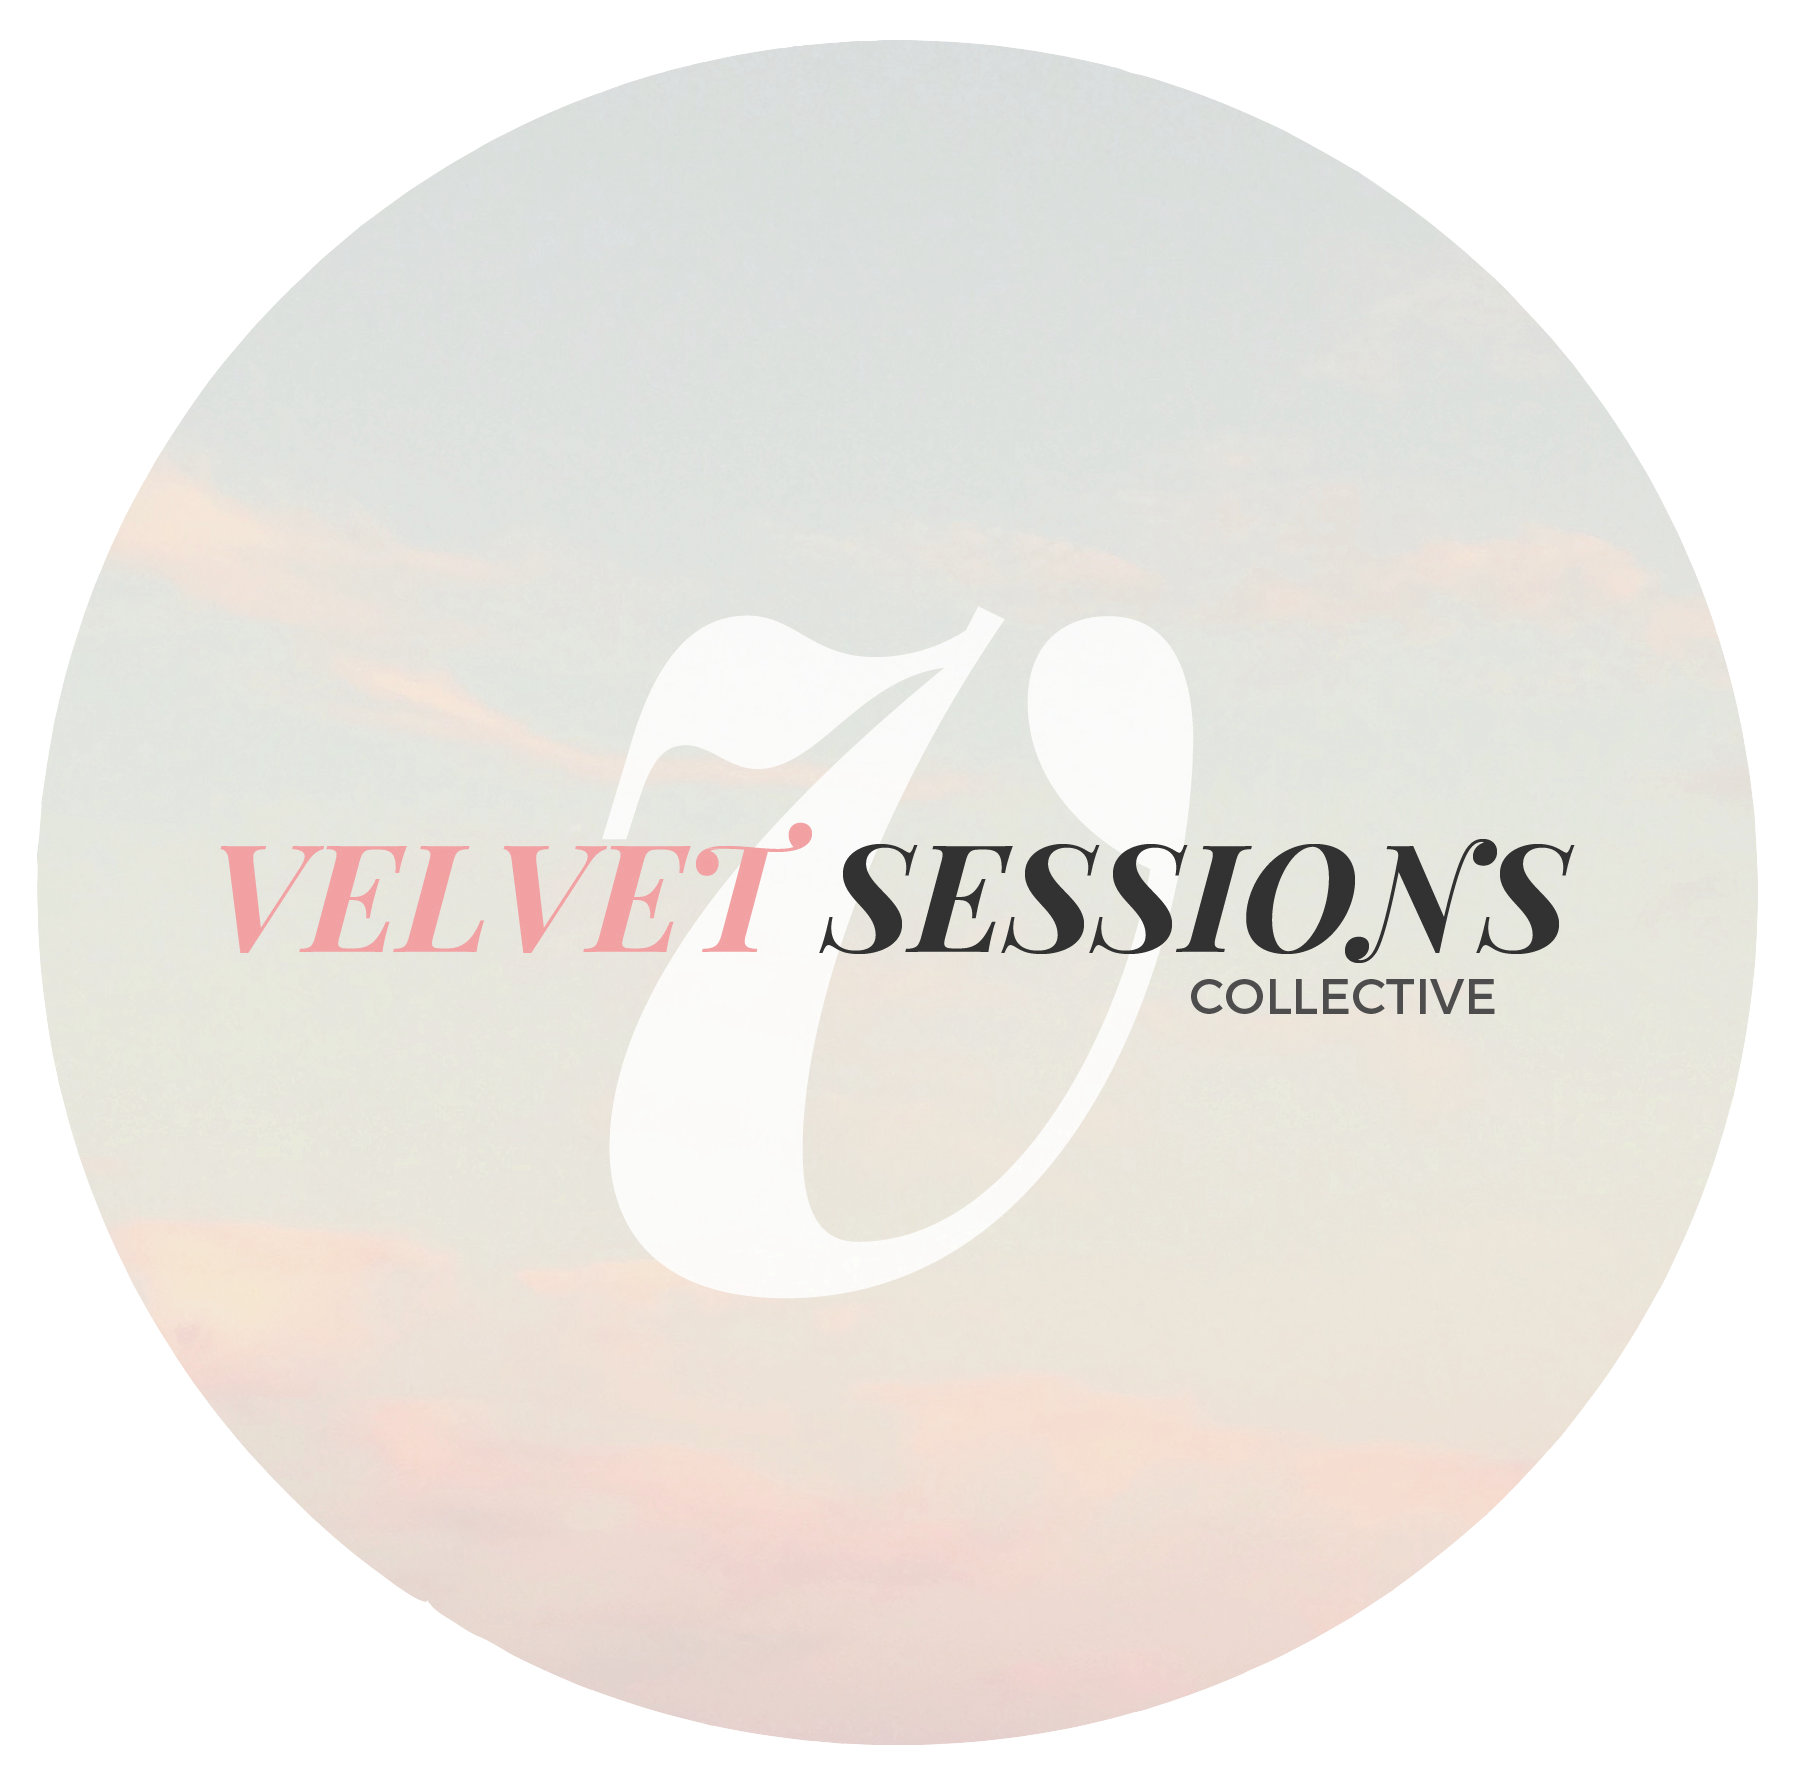 Velvet Sessions Collective